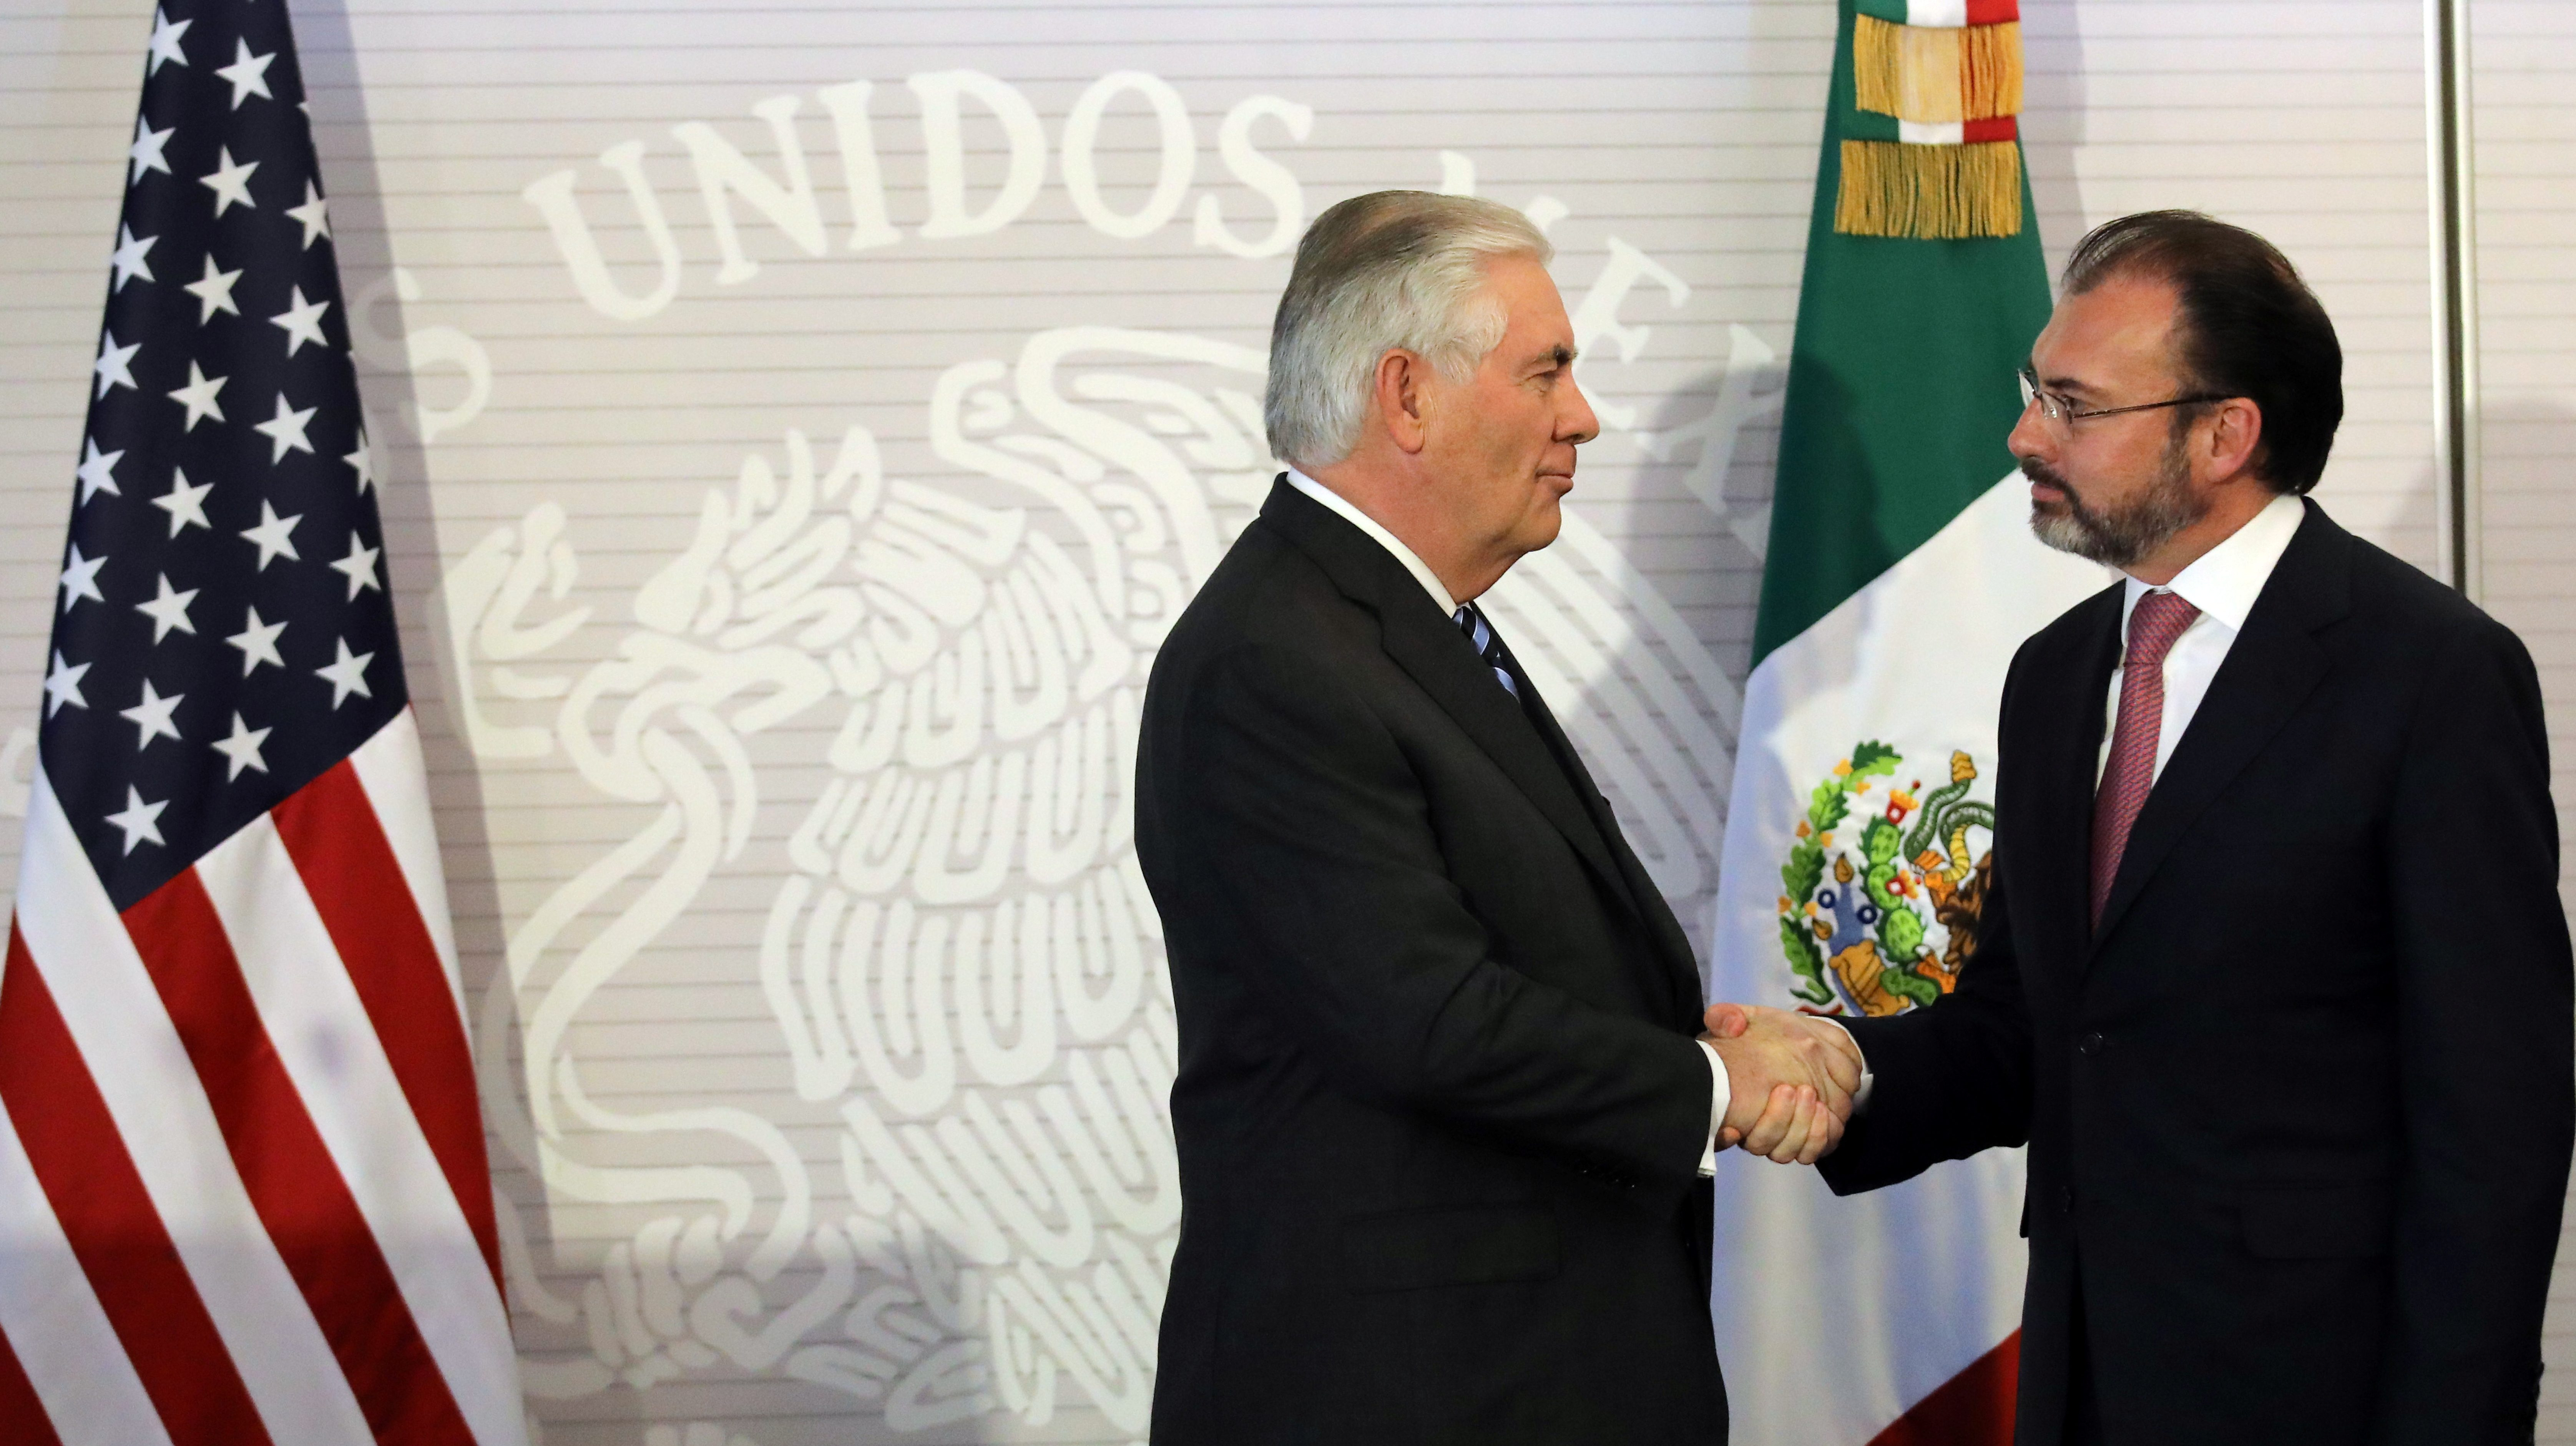 U.S. Secretary of State Rex Tillerson (L) shakes hands with Mexico's Foreign Secretary Luis Videgaray